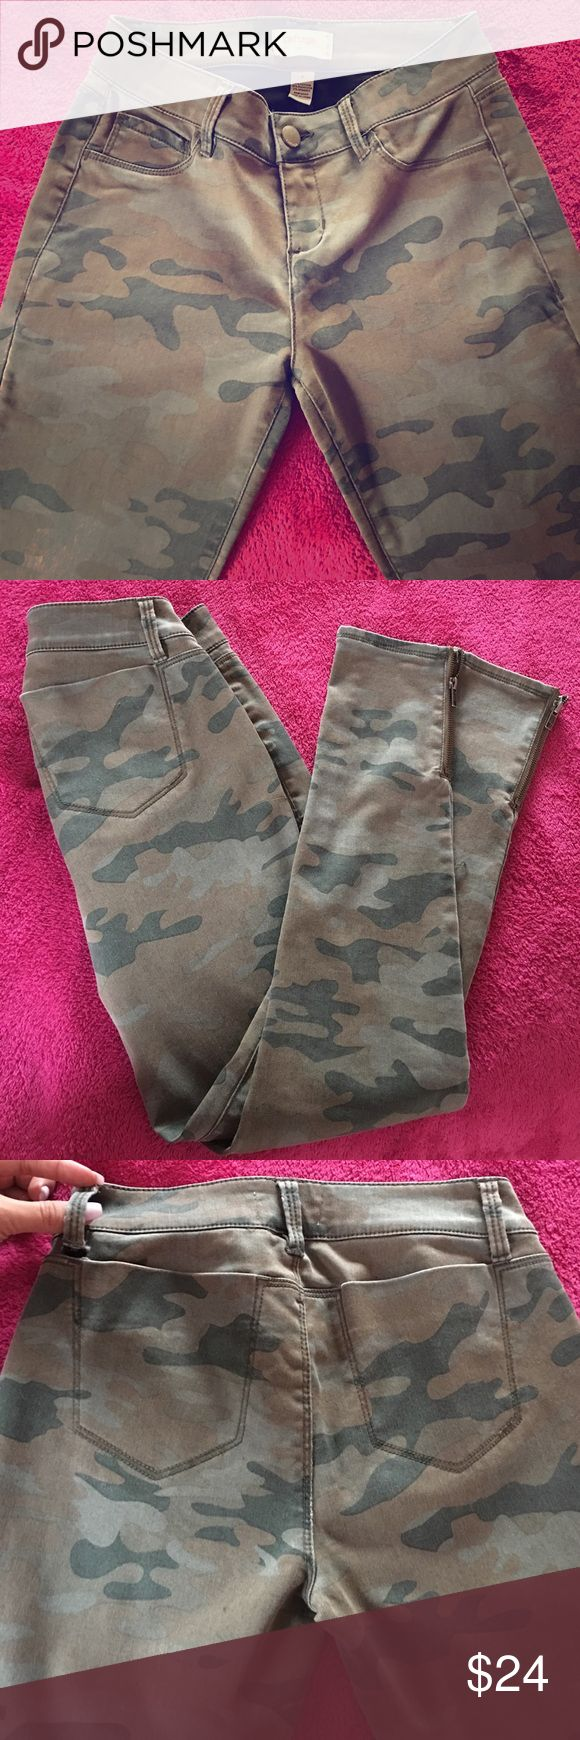 Camo Skinny Jeans Size 4, only worn ONCE! Light tear in the left backside belt loop- can easily be fixed and not noticeable at all, zipper near both ankles, very comfortable and stylish with heels sneakers or boots. Charlotte Russe Jeans Skinny